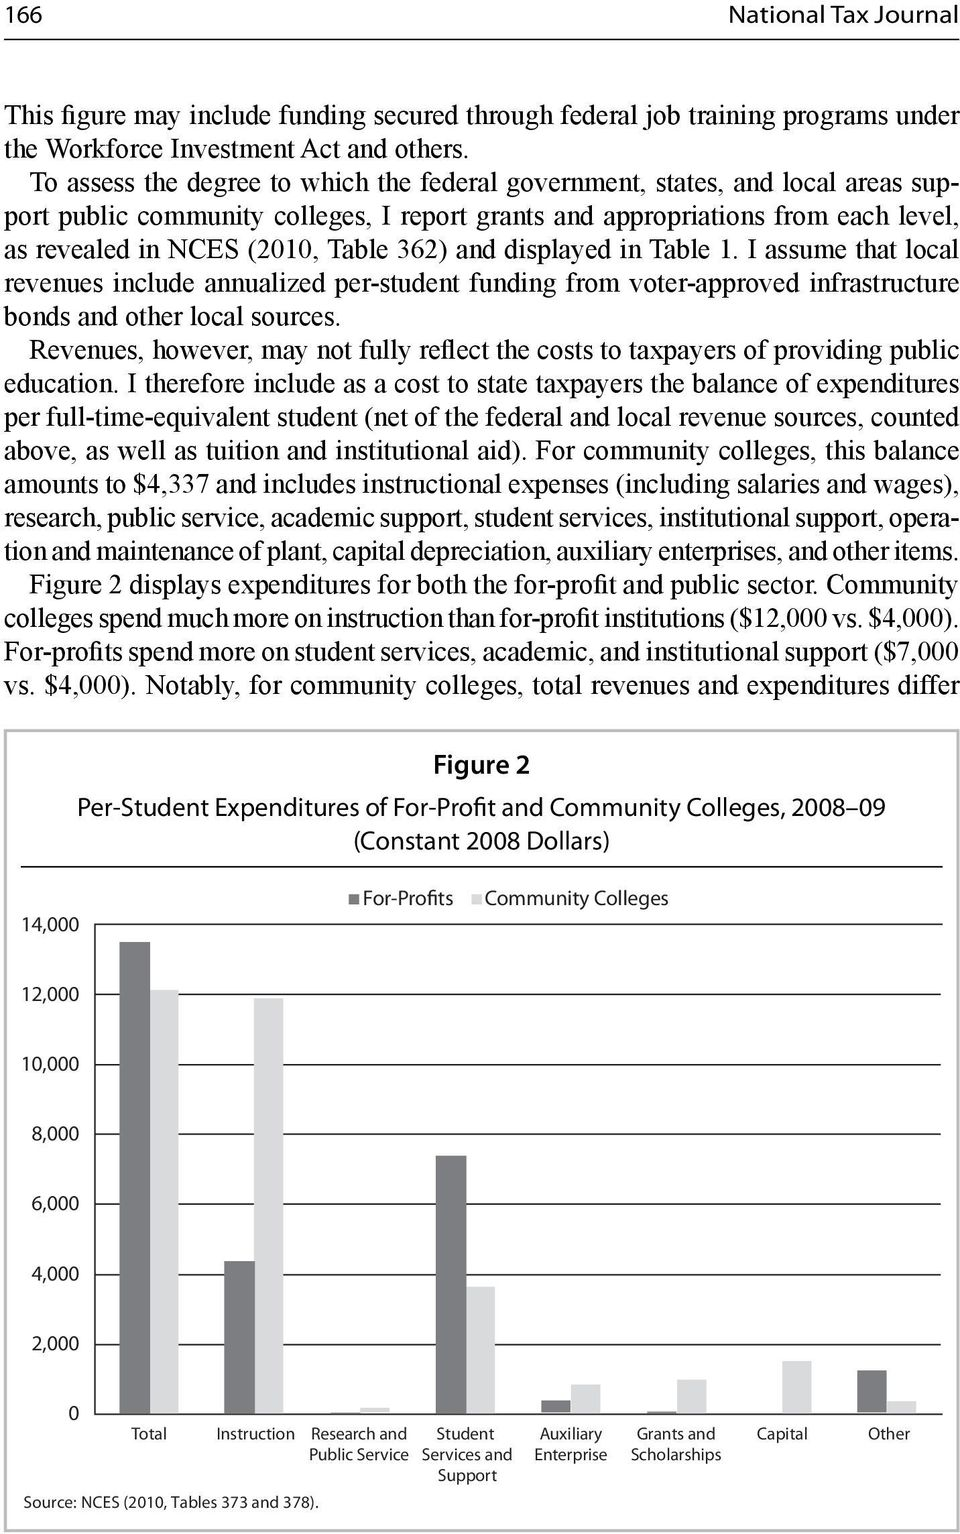 362) and displayed in Table 1. I assume that local revenues include annualized per-student funding from voter-approved infrastructure bonds and other local sources.